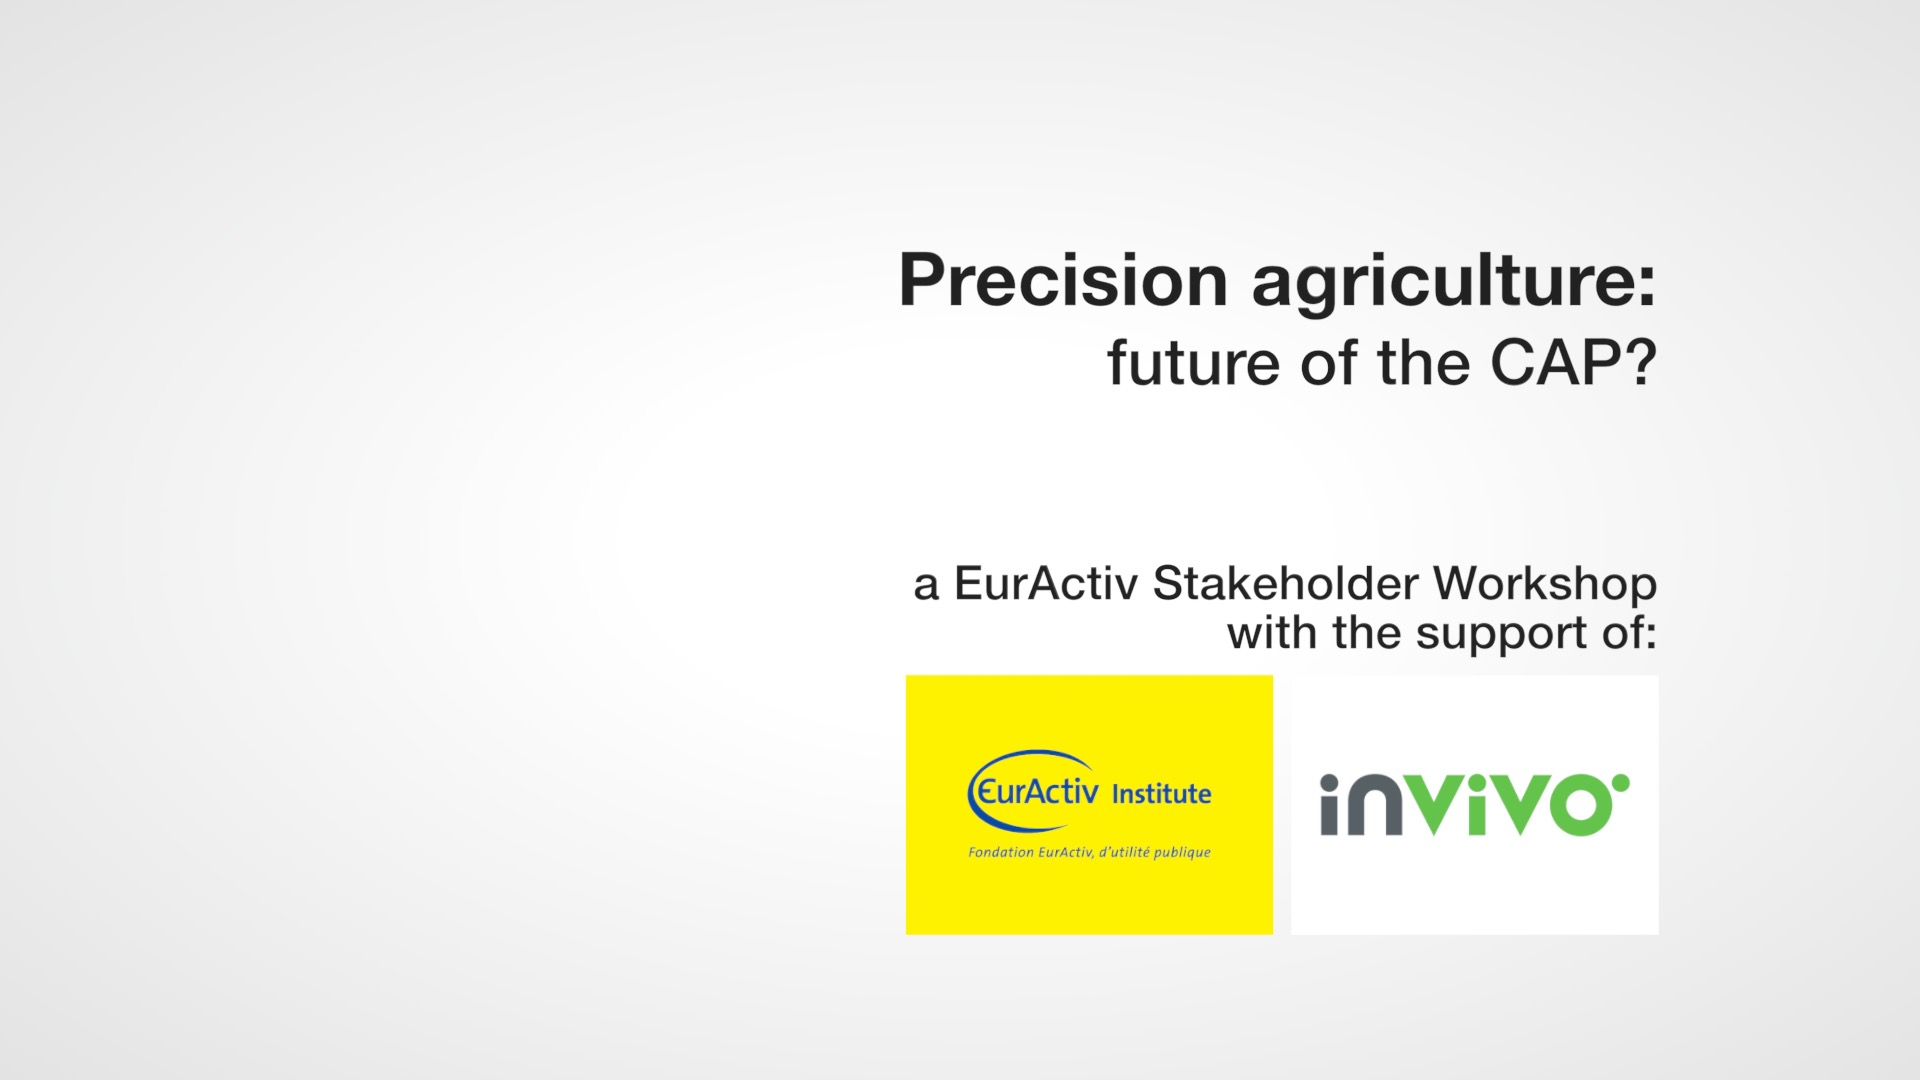 Precision agriculture: future of the CAP?